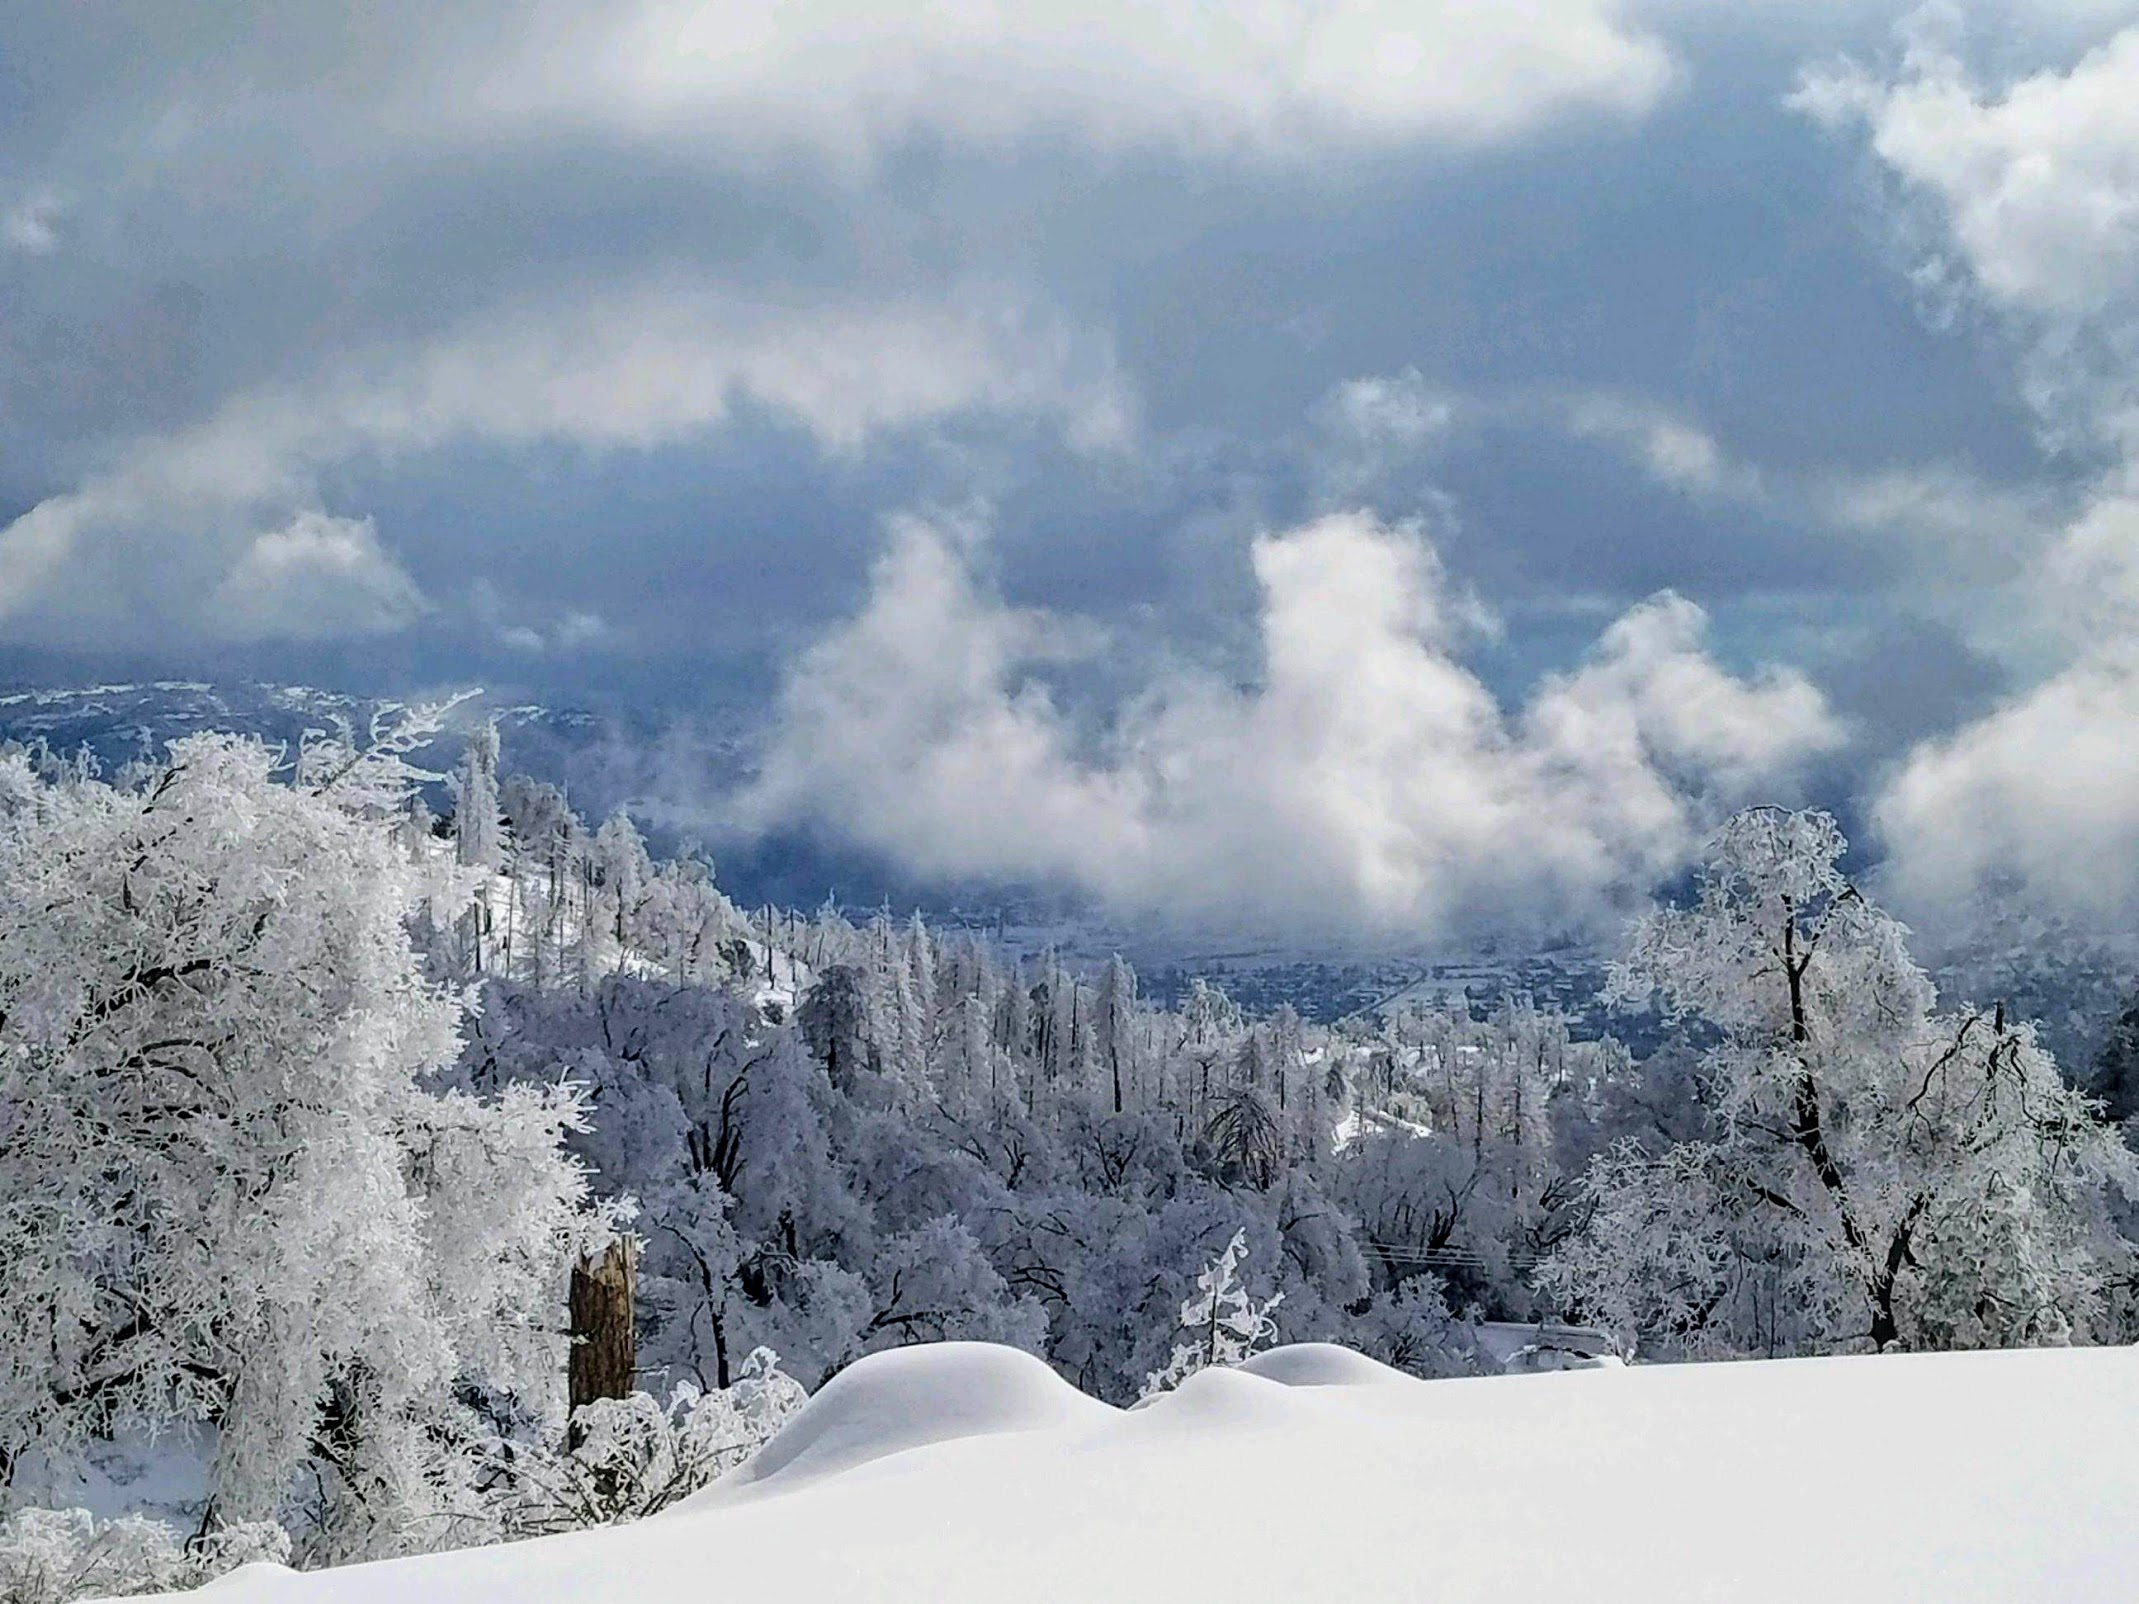 Heavy snow at upper elevations. photo taken by CSD road crew during the winter of 2018-2019